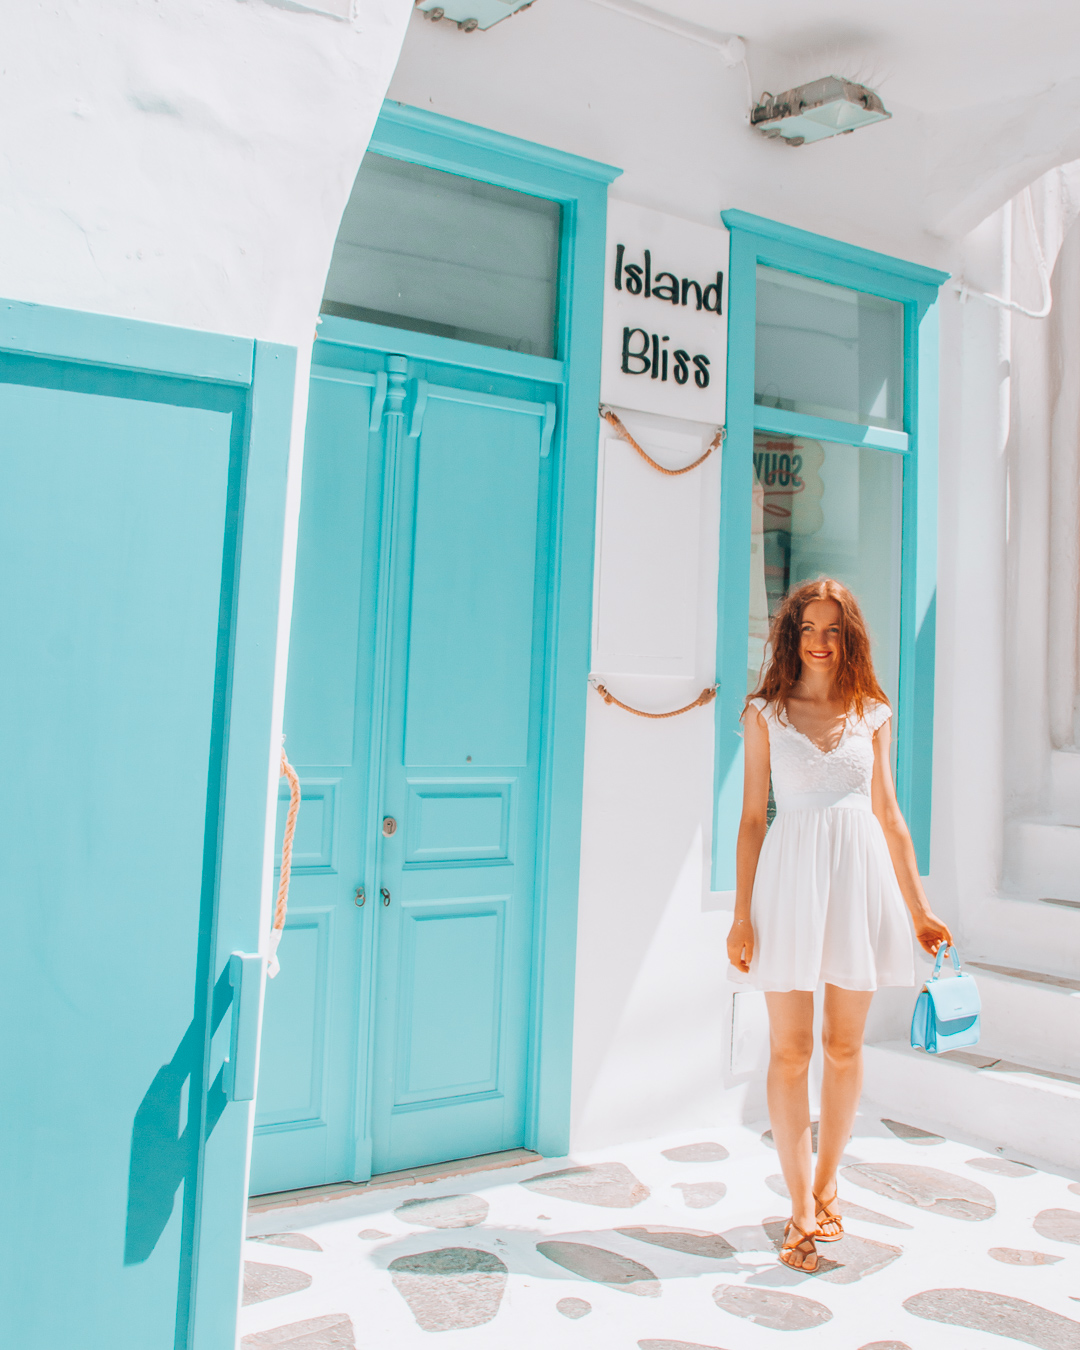 Girl with a white dress and a blue bag in front of a blue building in Mykonos